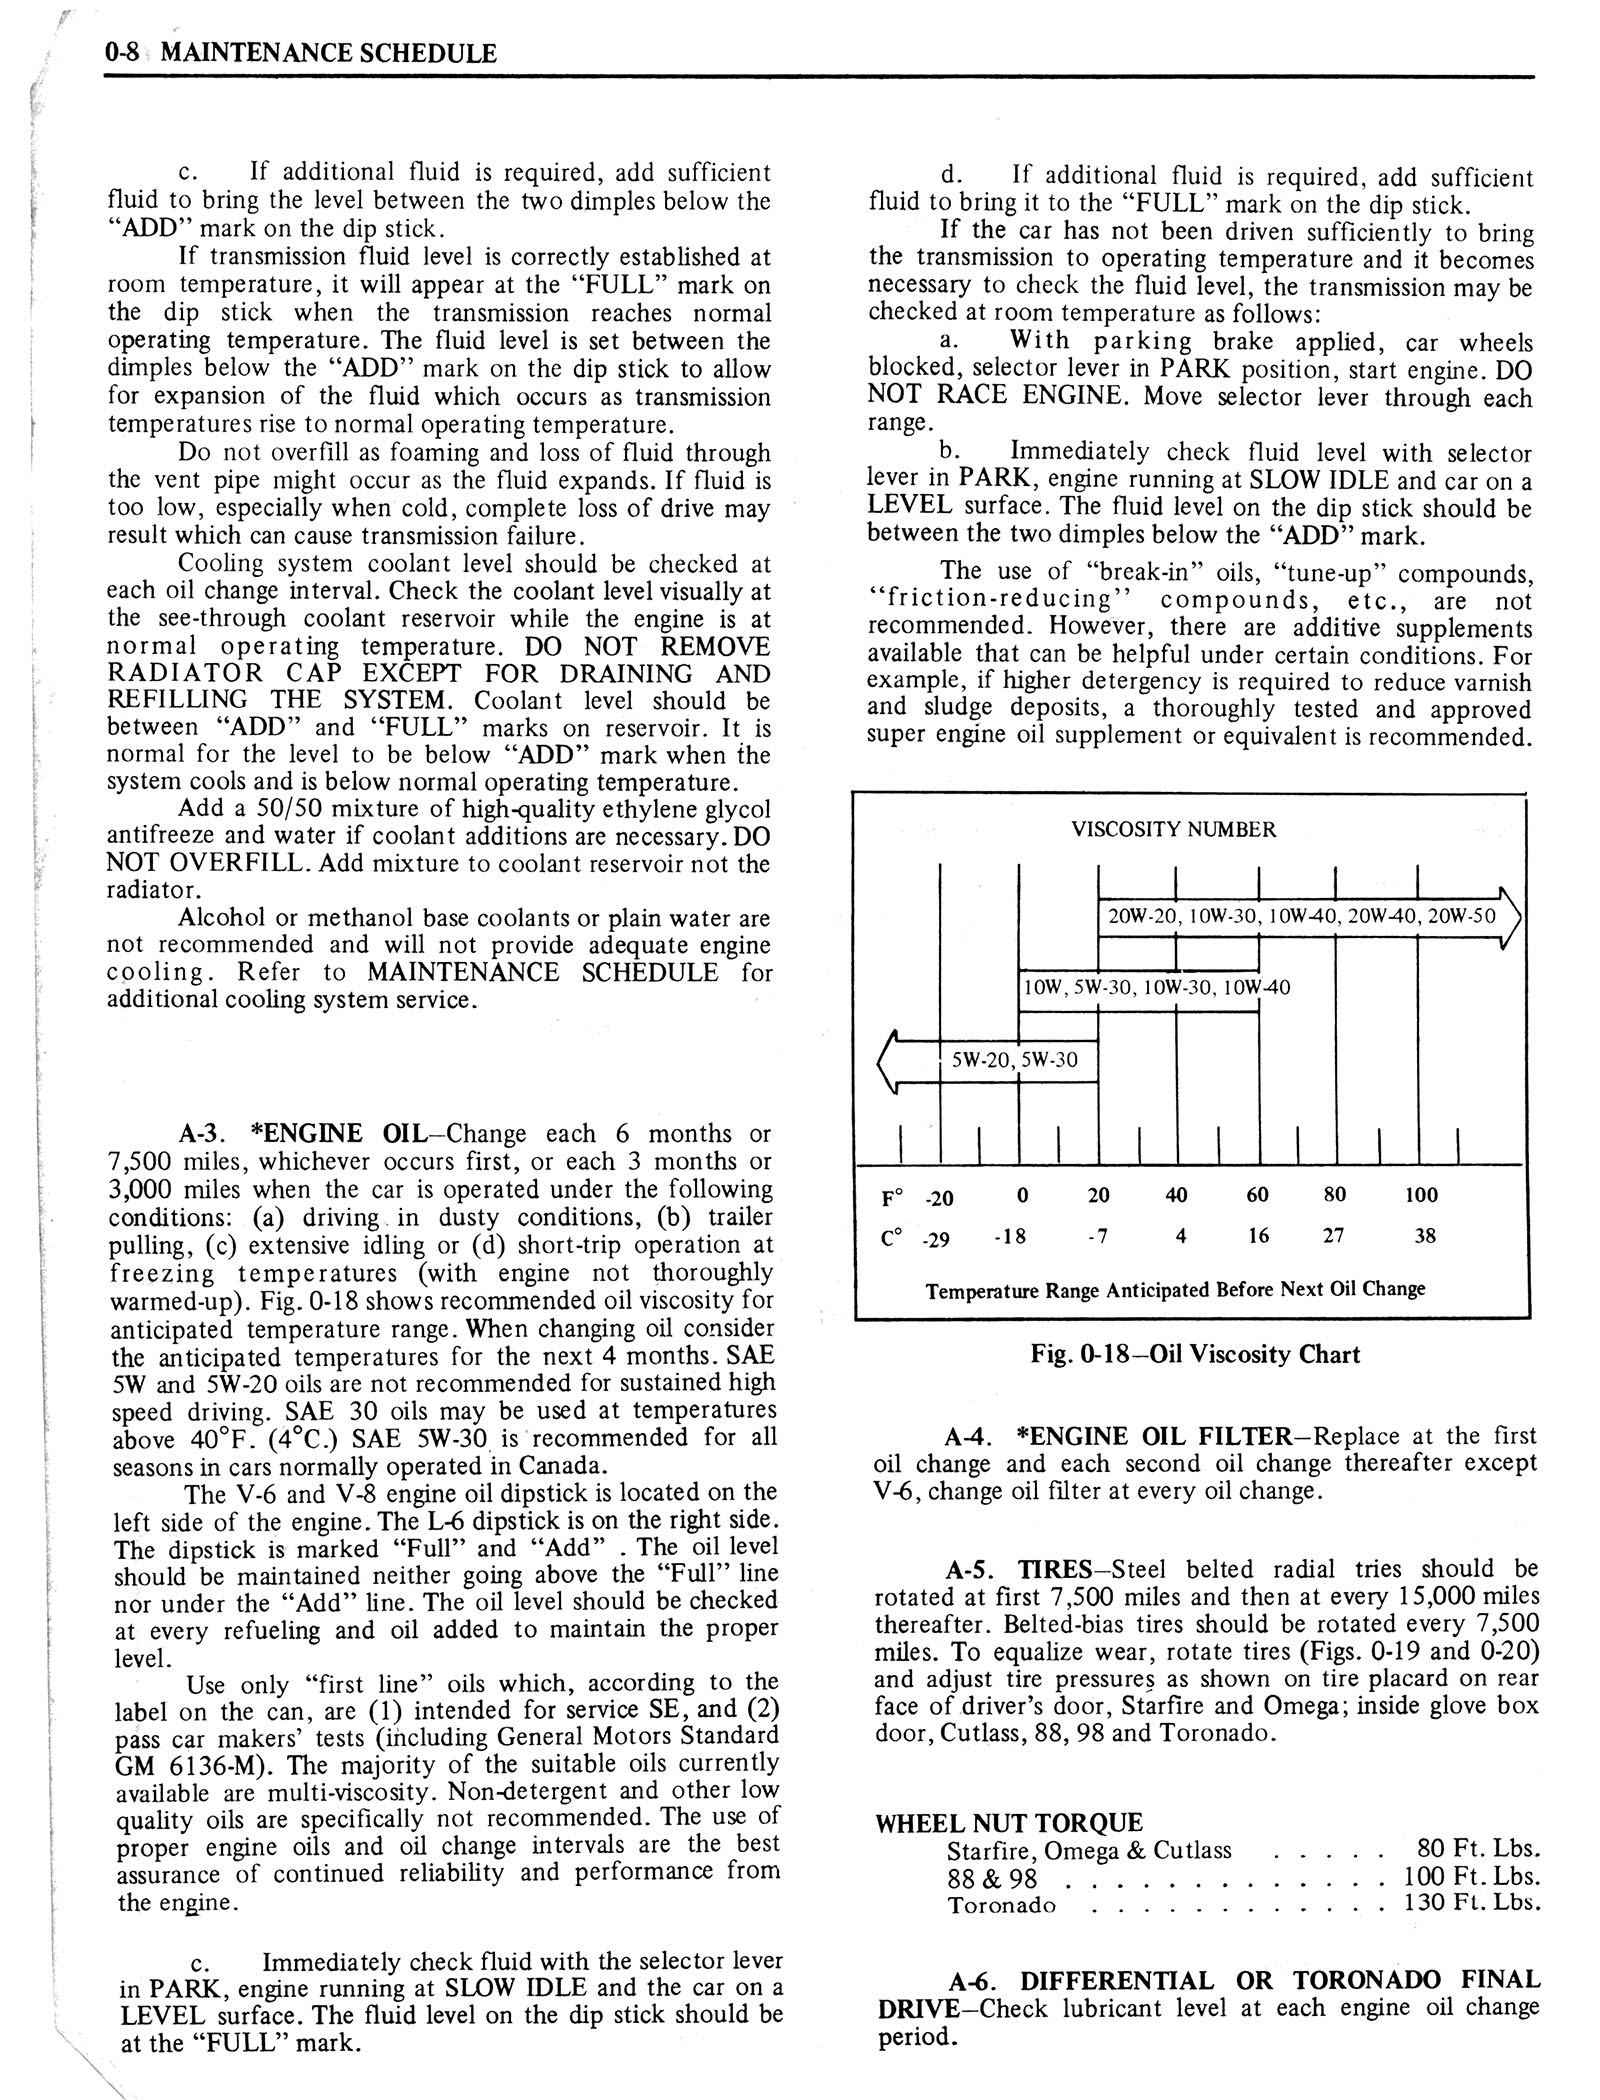 1976 Oldsmobile Service Manual page 12 of 1390